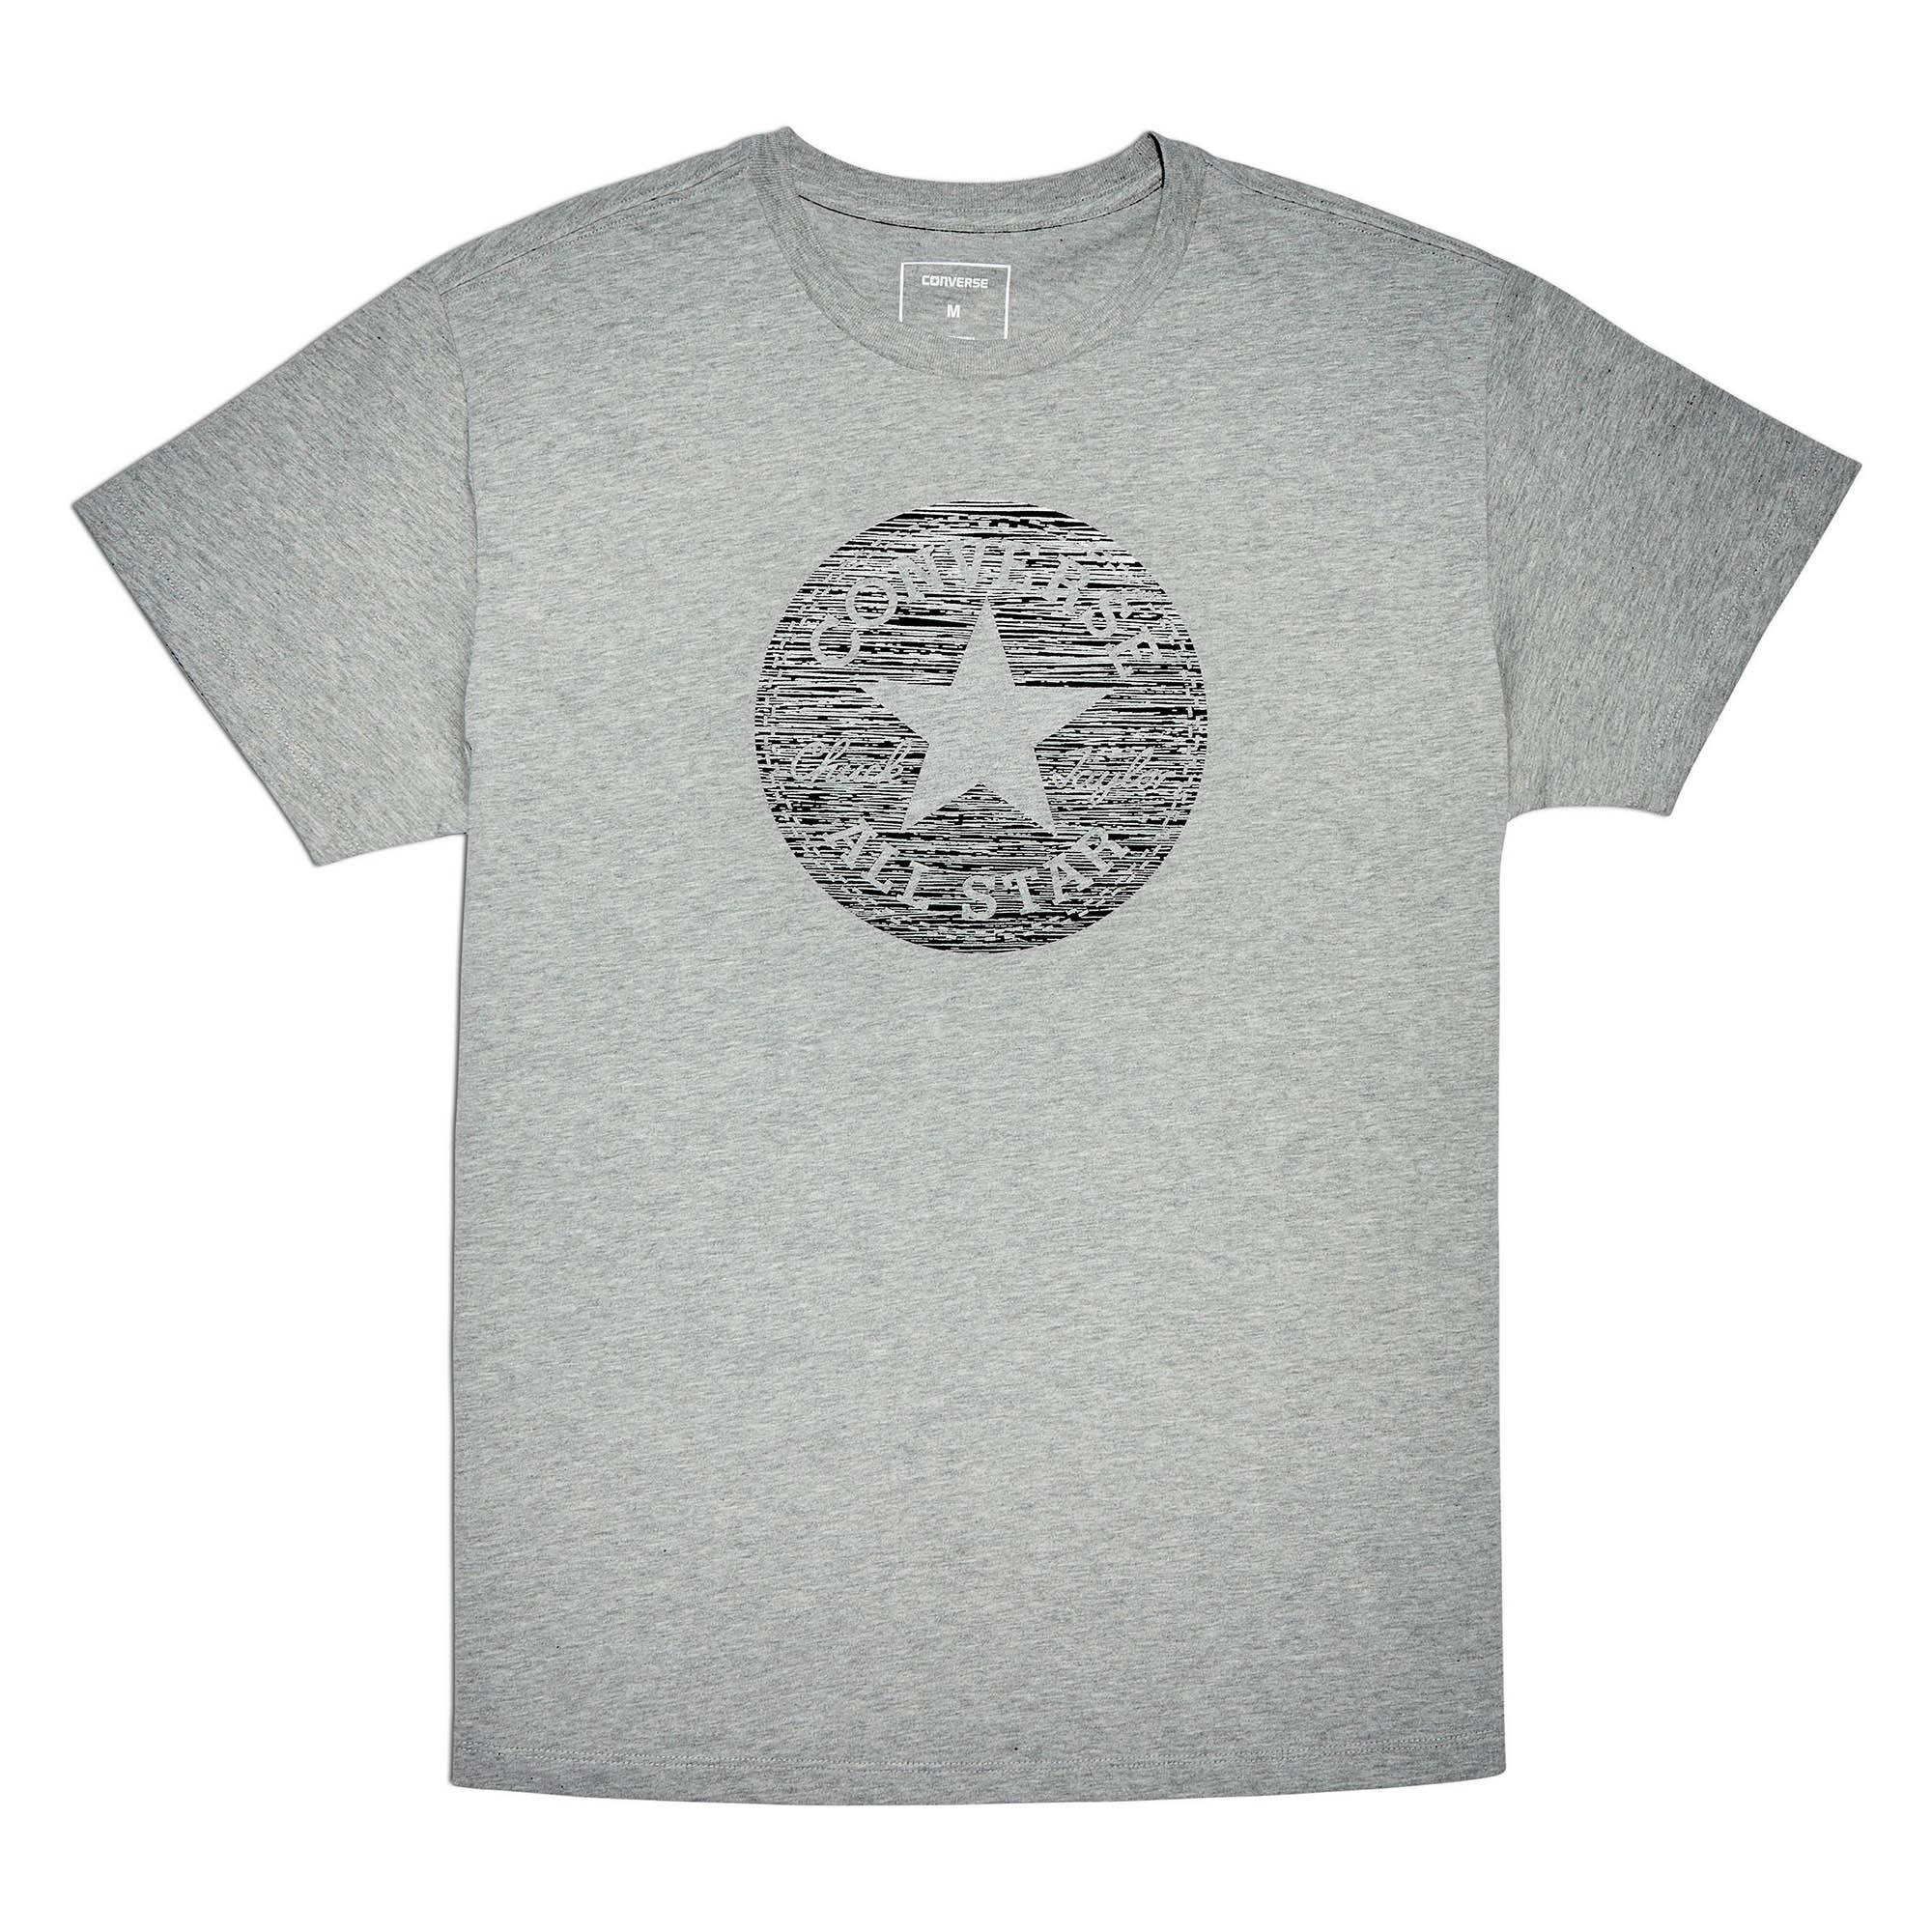 42d2f9ff5769  SALE  CONVERSE PRECIOUS METAL CHUCK PATCH EASY CREW TEE - VINTAGE GREY  HEATHER -